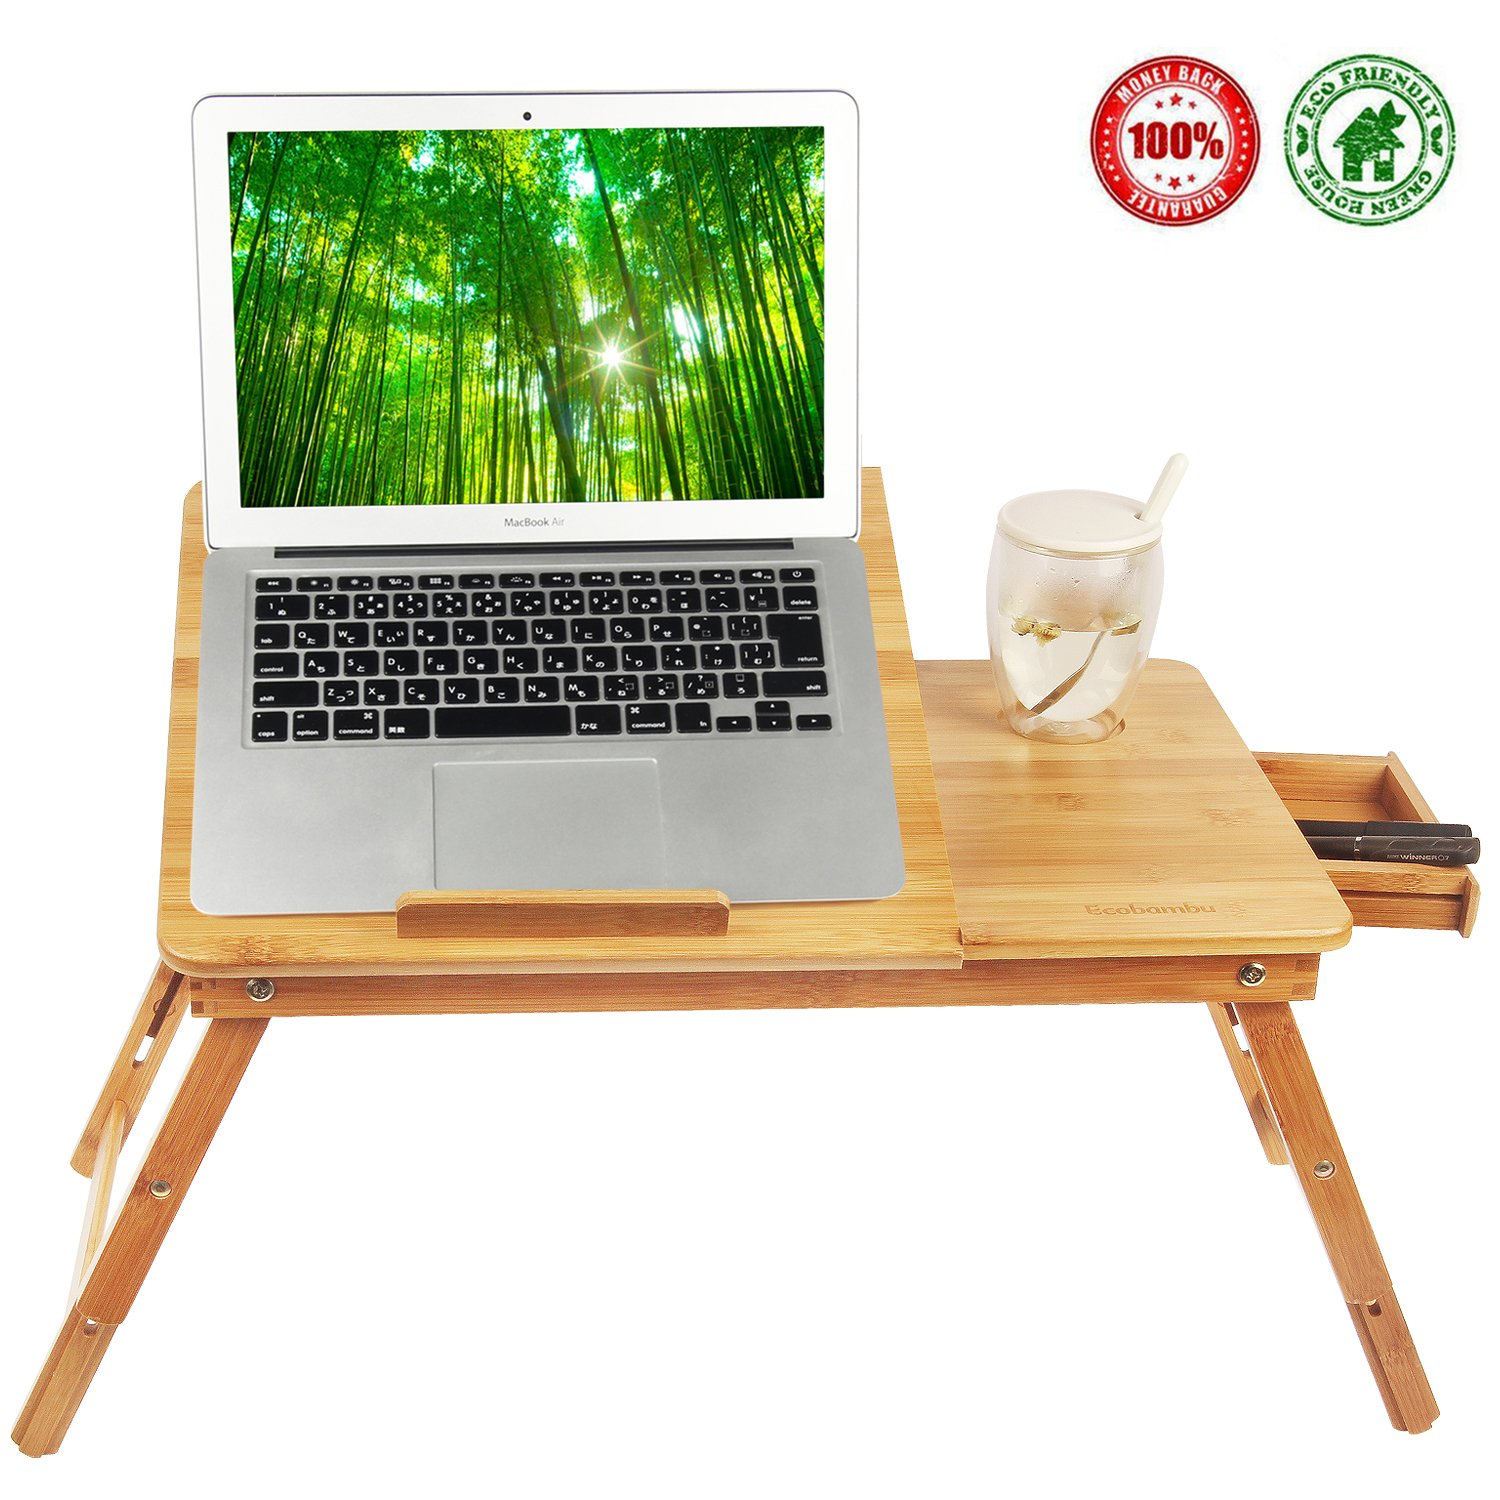 Laptop Desk Tray,Computer, Notebook, Ipad, Book Holder & Stand , Breakfast Serving Bed Tray, Adjustable & Foldable with Flip Top and Drawer, 100% Bamboo - by Ecobambu